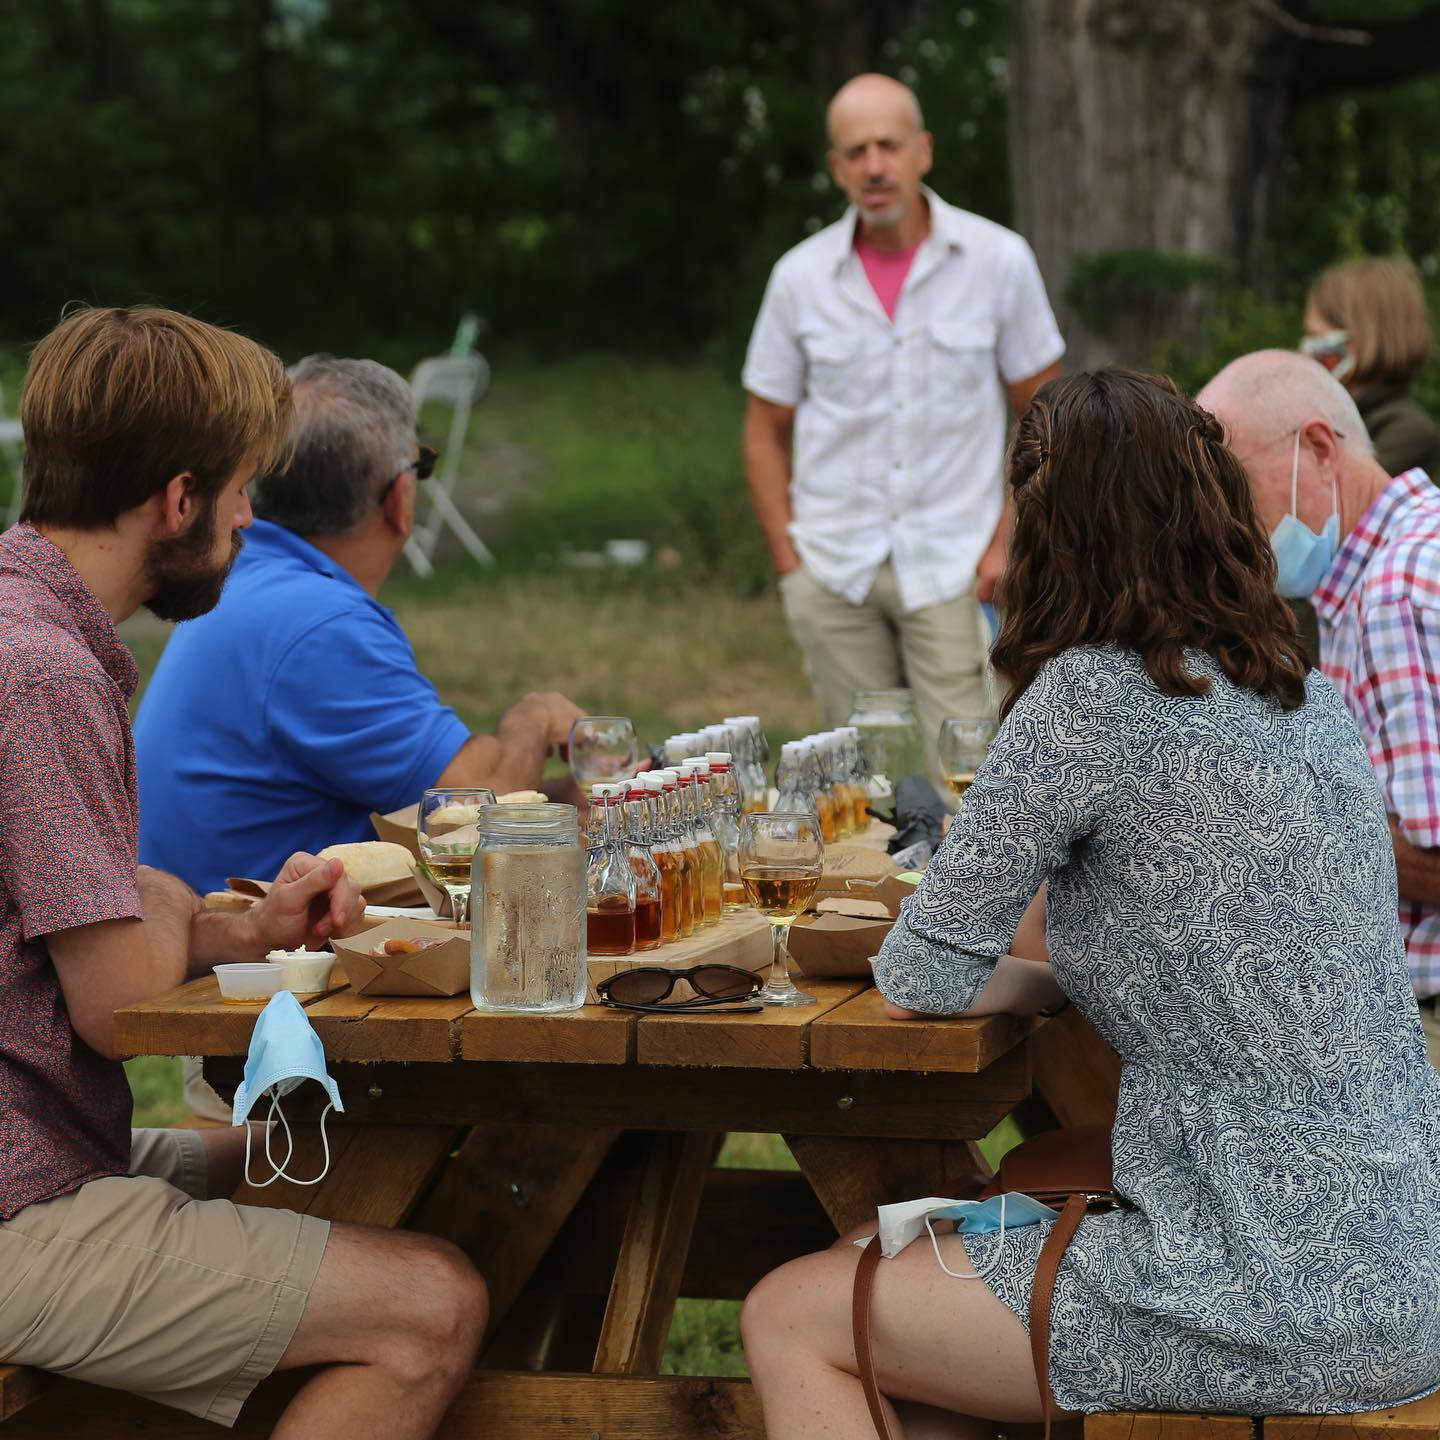 Socially-distanced Outdoor Tasting at Eve's Cidery